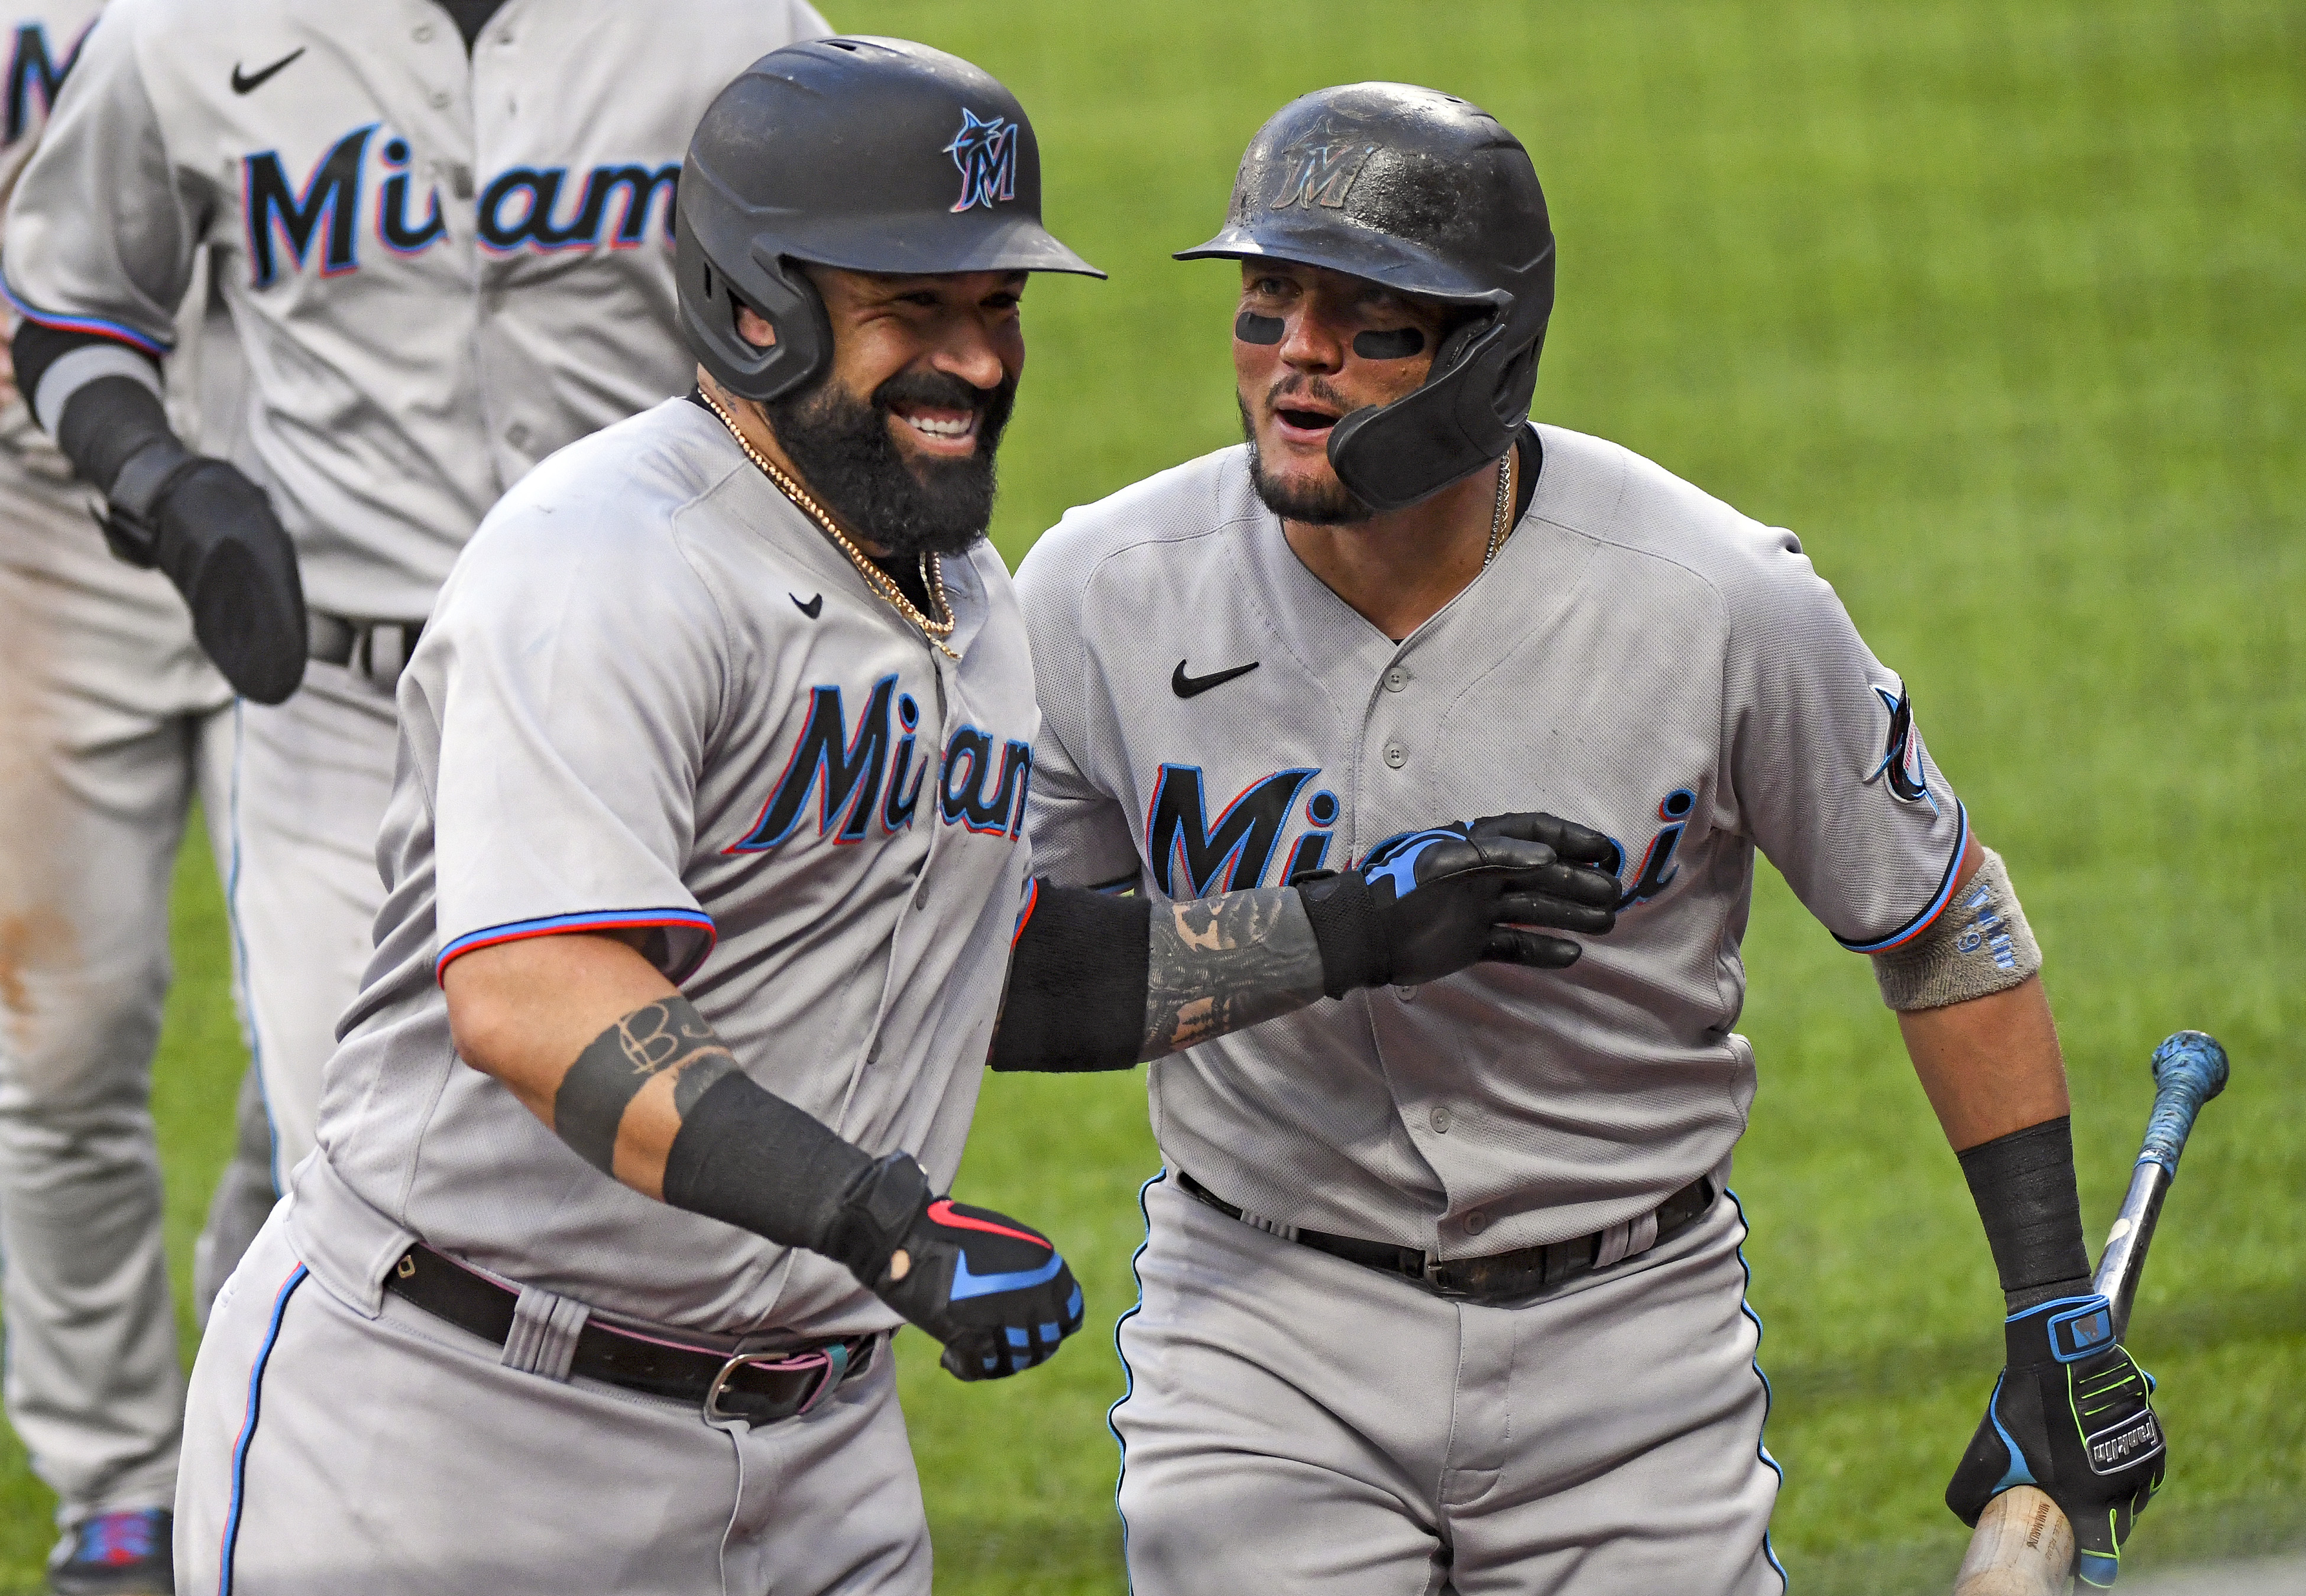 Miami Marlins catcher Sandy Leon (7) is congratulated by shortstop Miguel Rojas (19) after hitting a three run home run in the second inning during the Miami Marlins game versus the Baltimore Orioles